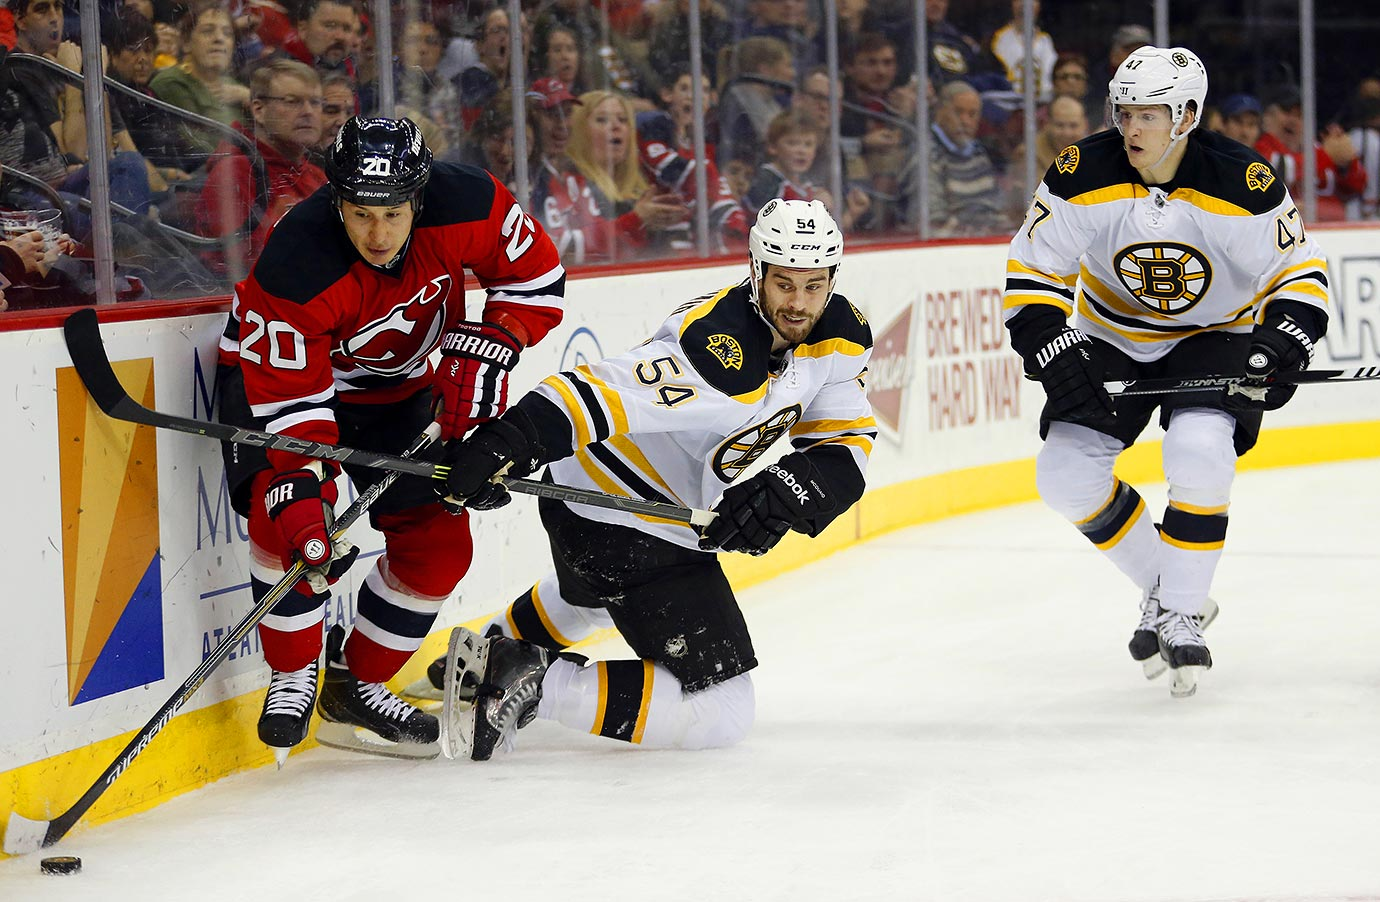 A preseason injury scare for Zdeno Chara illustrated how close this team is to having a defense led by Torey Krug, Zach Trotman and Adam McQuaid. After trading Dougie Hamilton and losing Dennis Seidenberg long term (back surgery), the B's can plan of spending a lot of time chasing the puck around their own zone for the first two months. By that point the playoffs could already be out of reach.